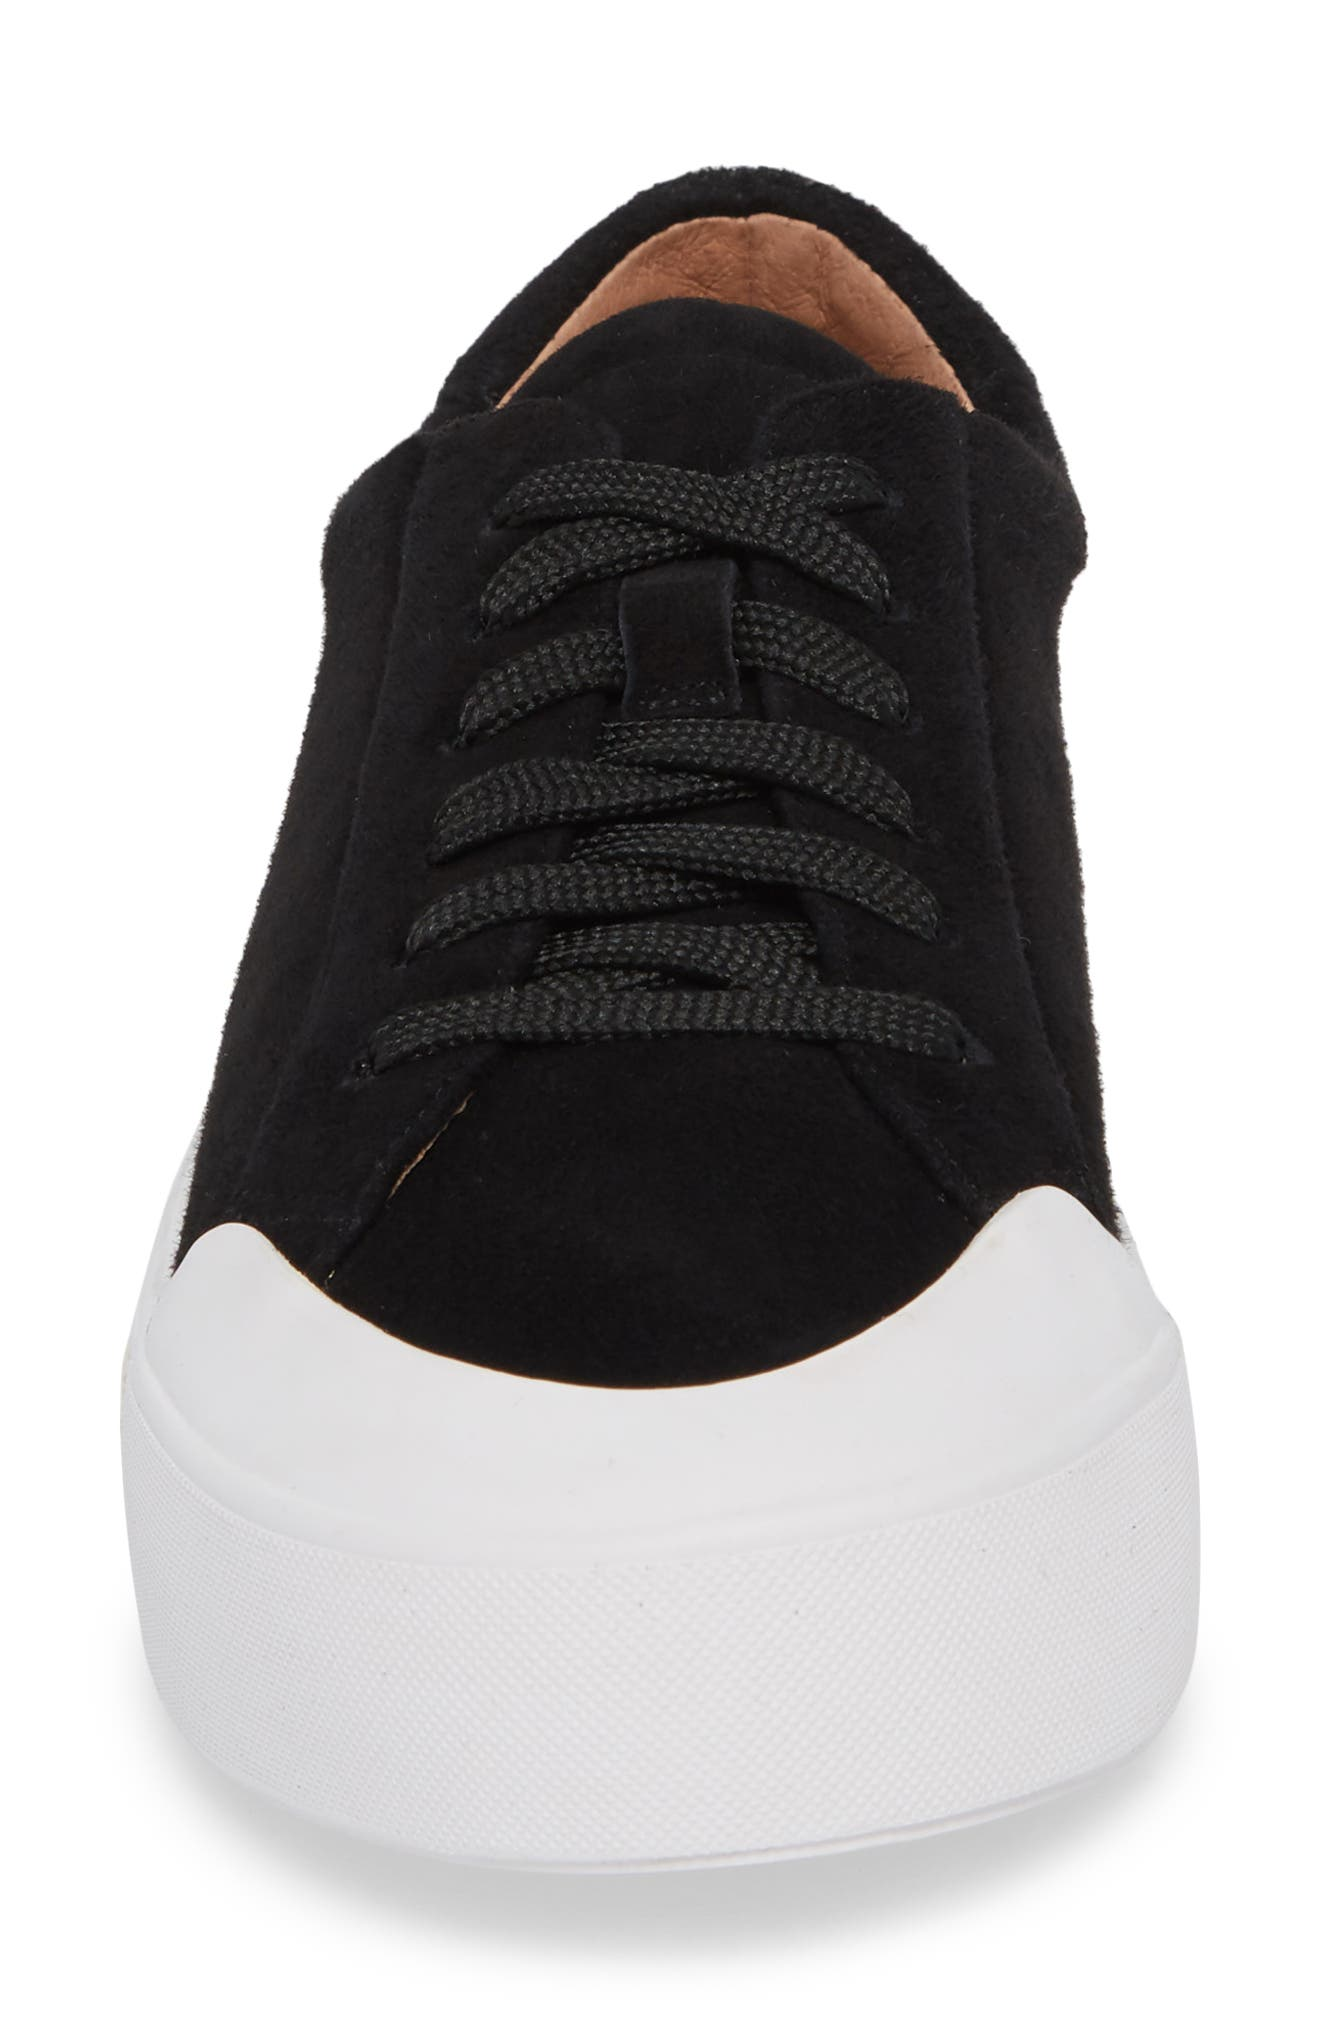 Toran Platform Sneaker,                             Alternate thumbnail 4, color,                             001